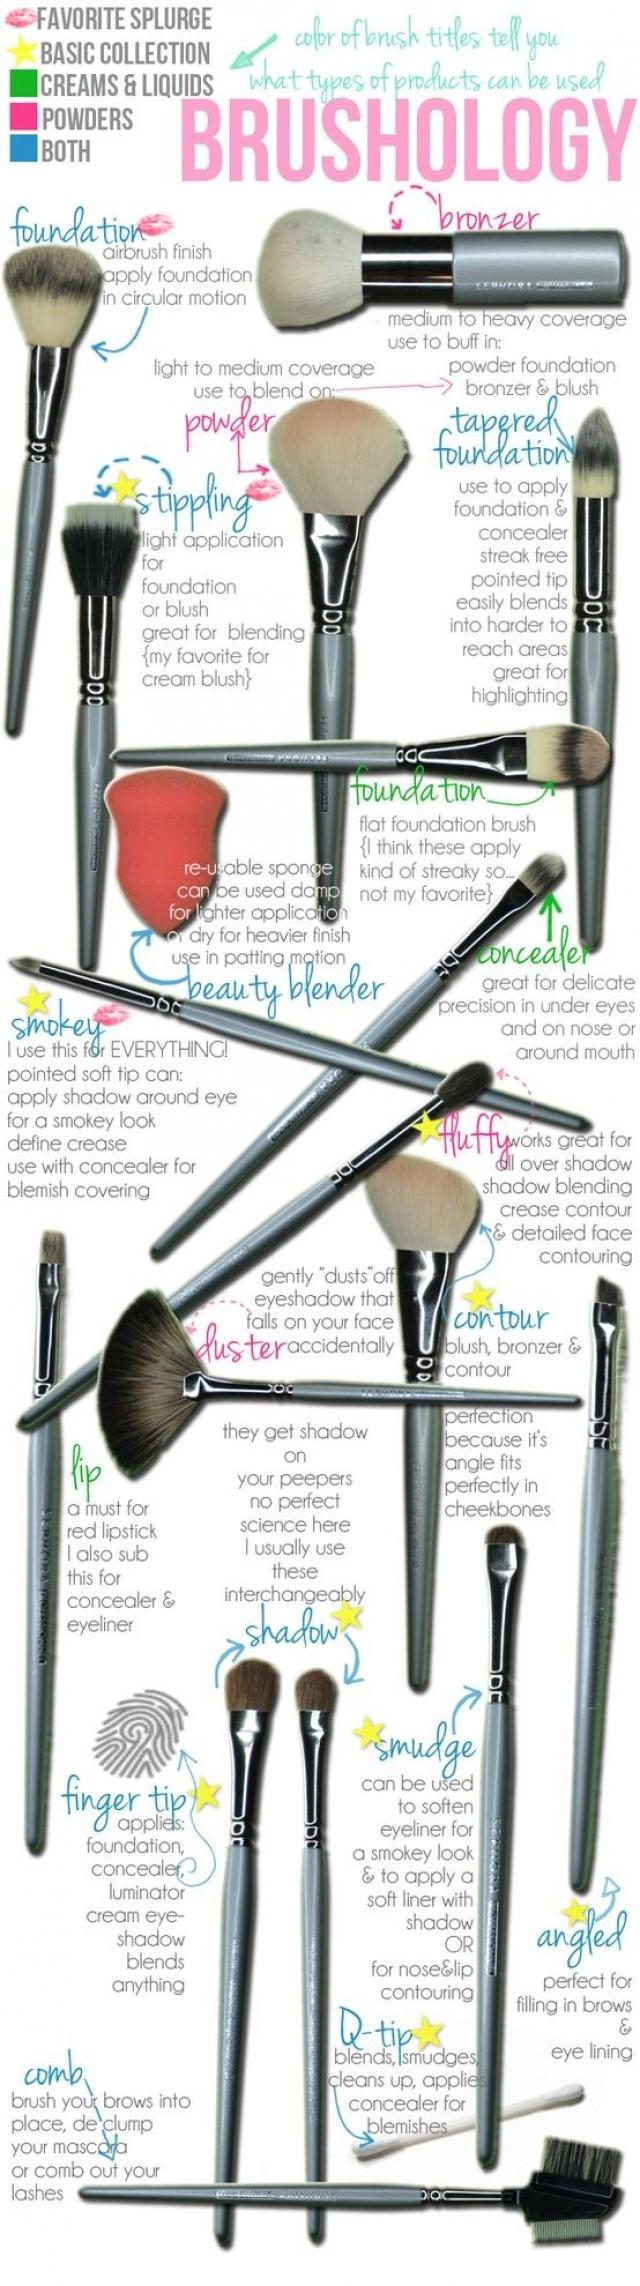 wedding photo - Brushology: Know Your Makeup Brushes